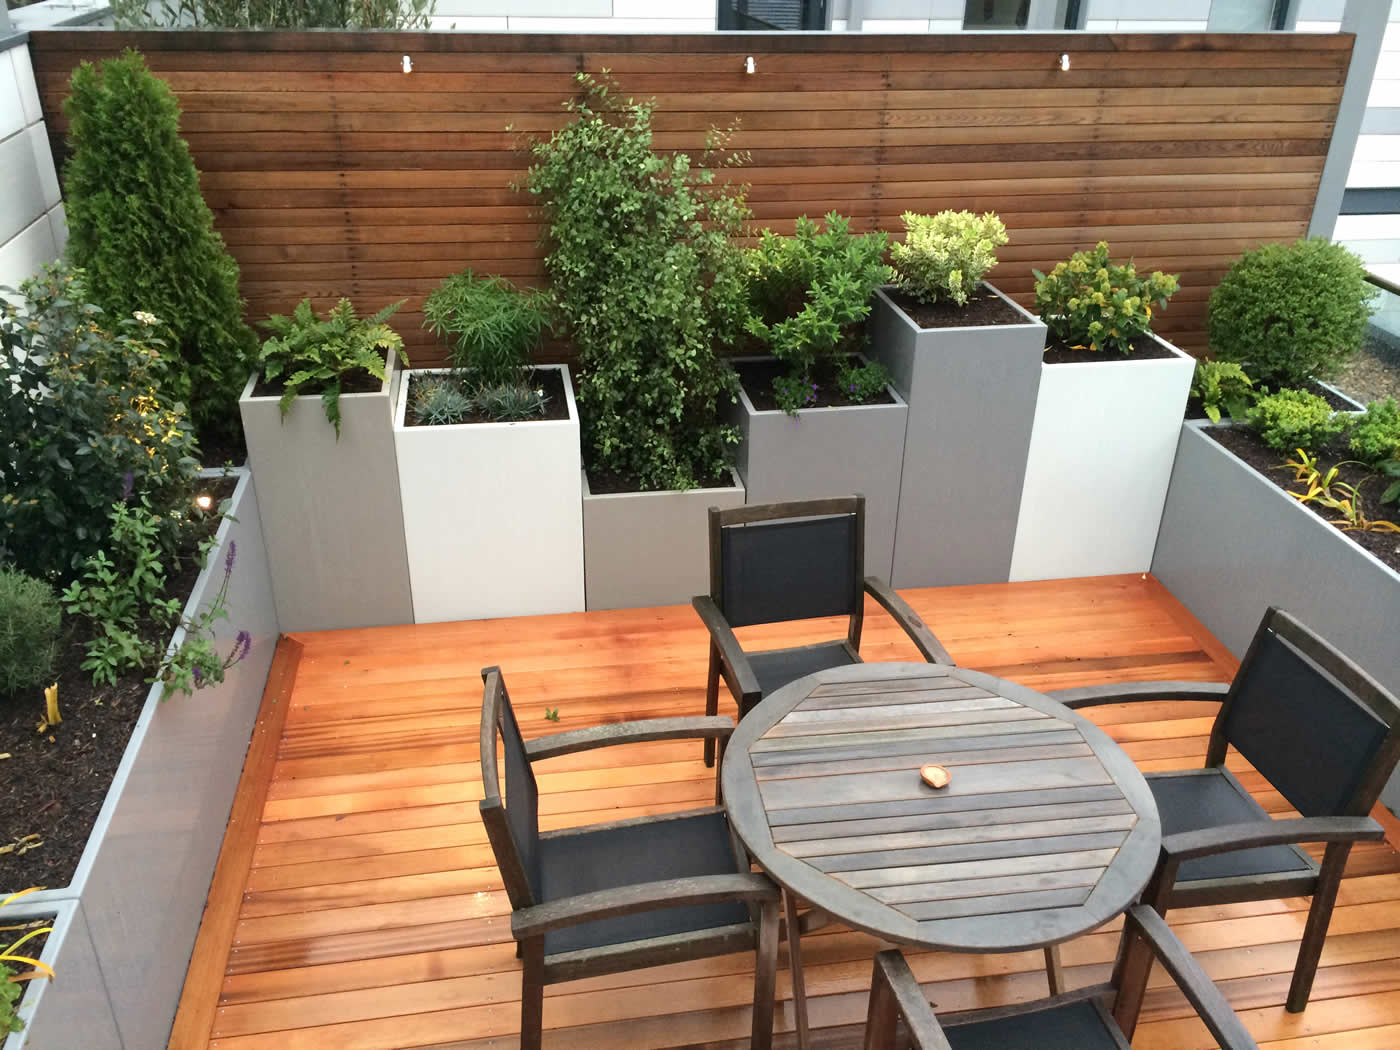 Kings Cross Roof Terrace At New Apartments, Pippa Martlew, Cedar Timber,  Aluminium Planters